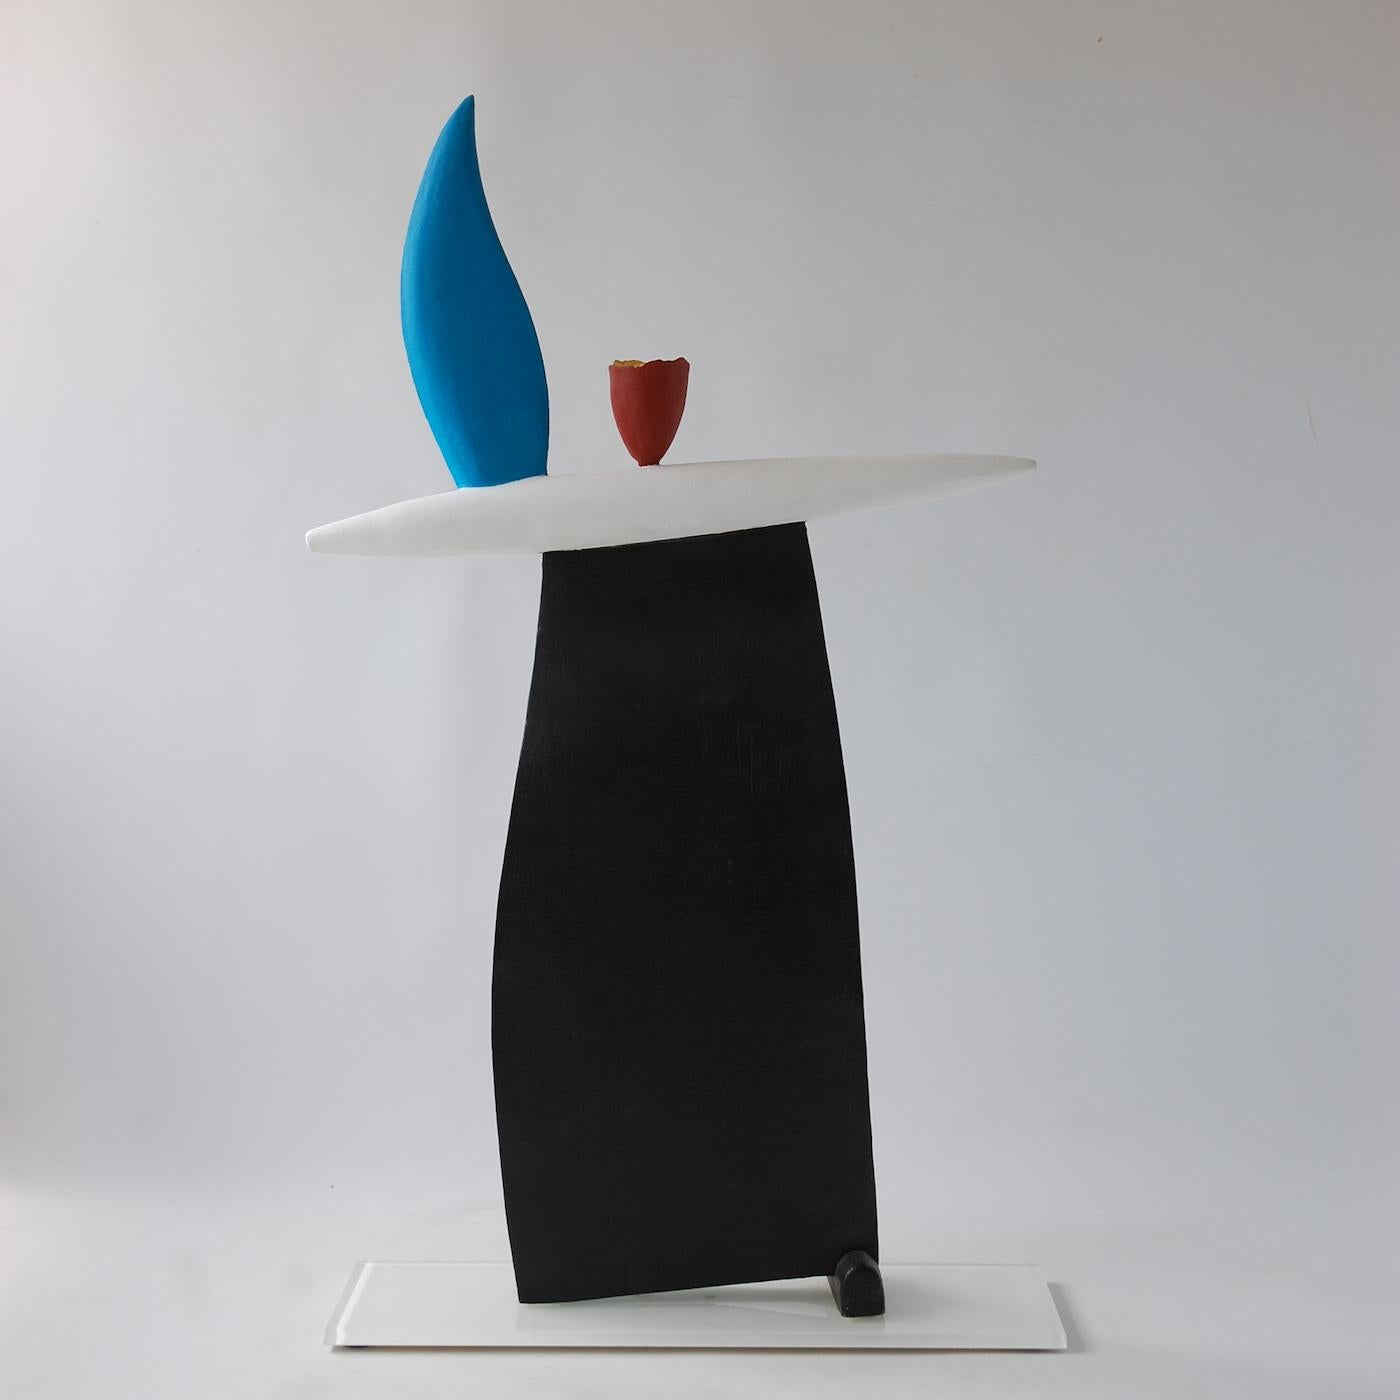 Rising (2) by Patricia Volk - Abstract ceramic sculpture, painted clay